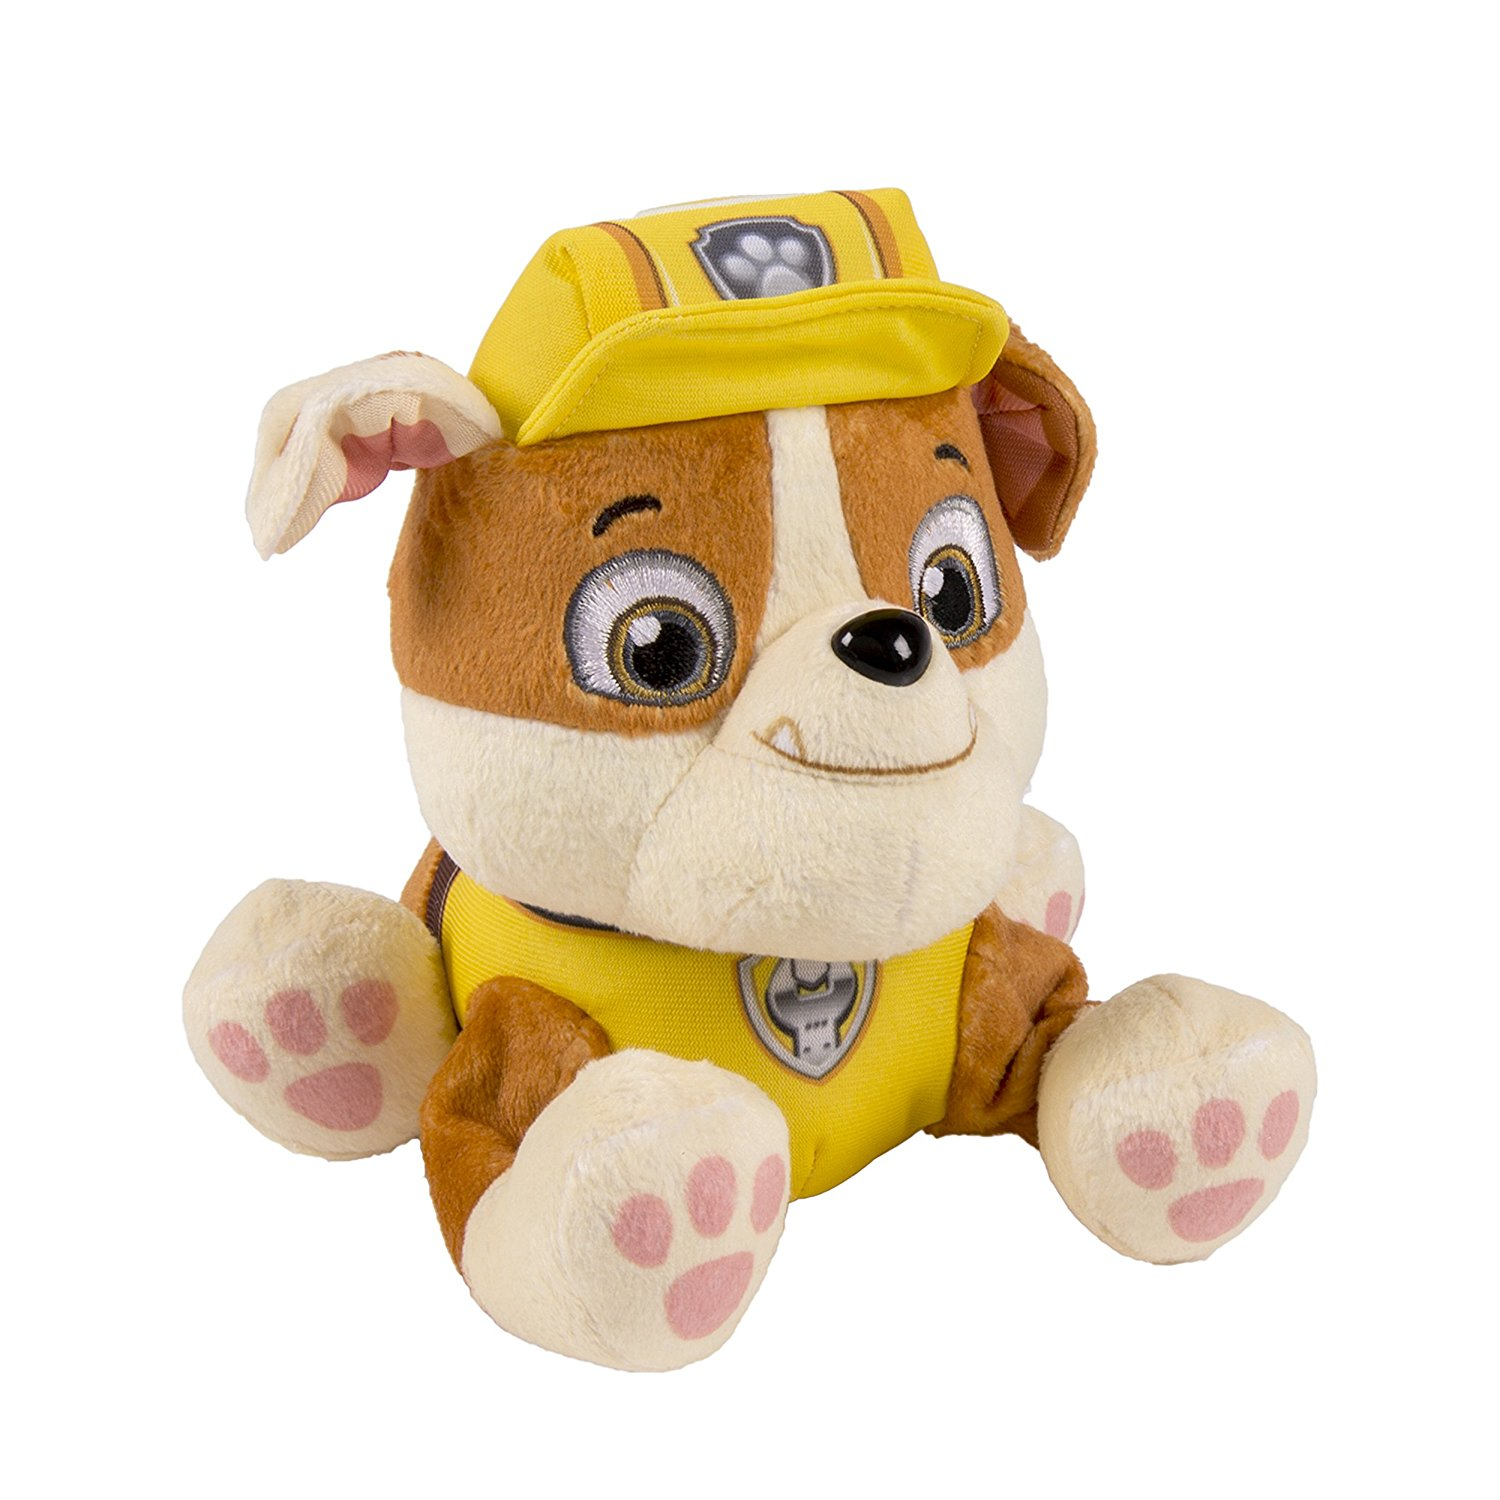 Nickelodeon, Plush Pup Pals- RubbleCollect all your favorite Pup Pals including Marshall,... by